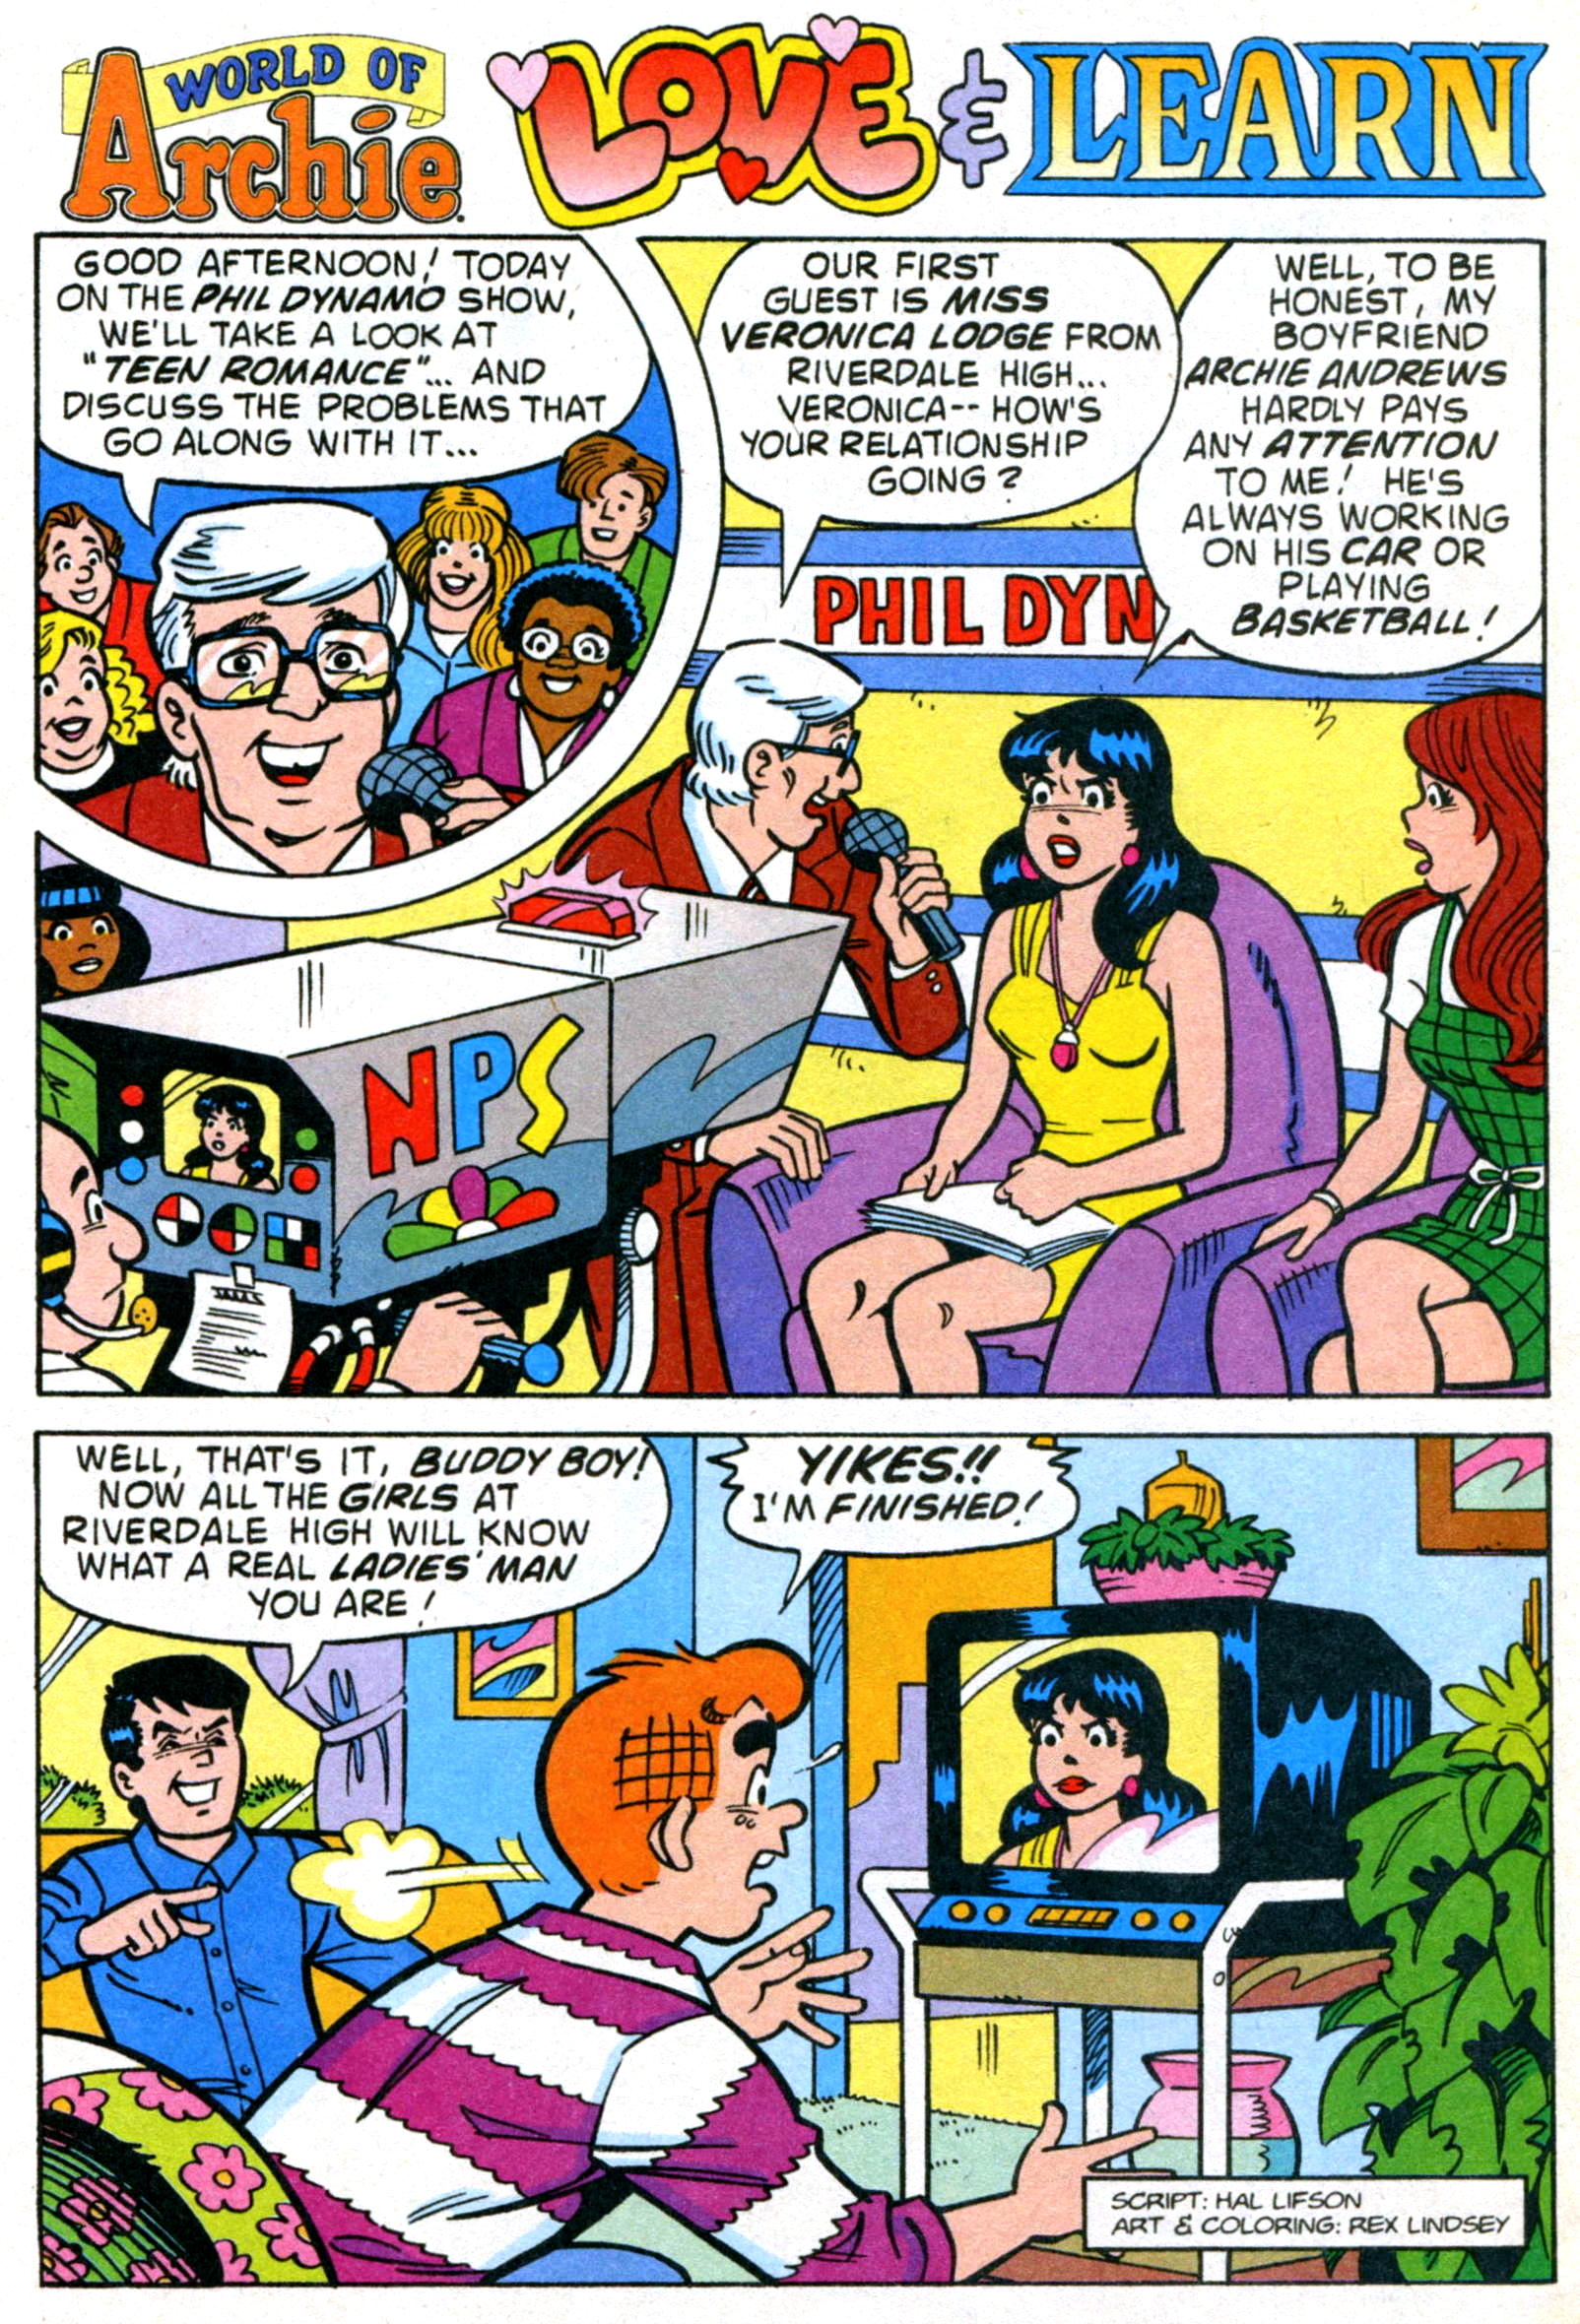 Read online World of Archie comic -  Issue #22 - 28